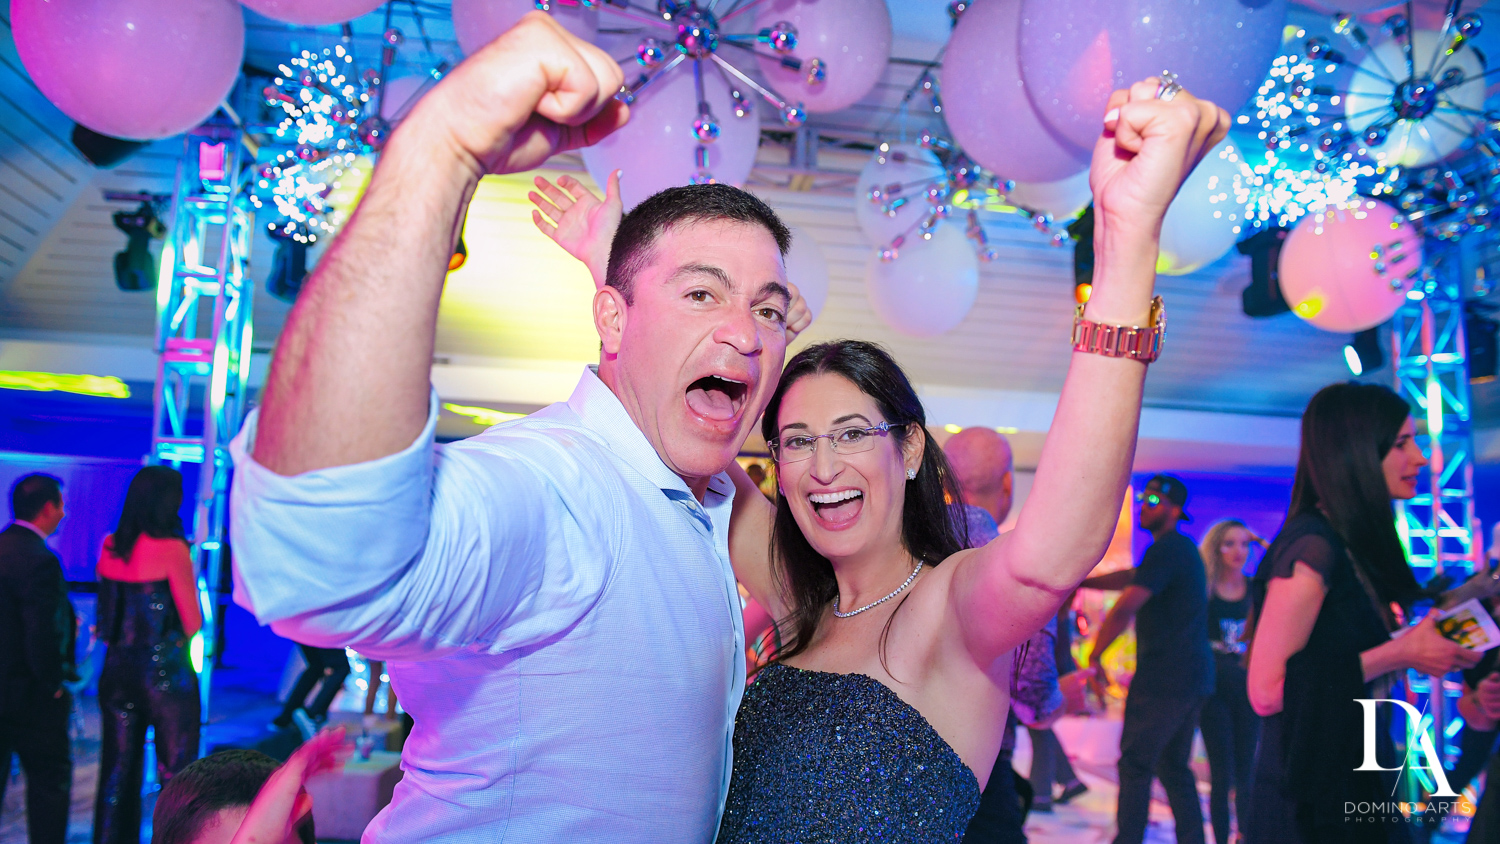 celebrating at Trendy Decor Bat Mitzvah at St Andrews Country Club by Domino Arts Photography